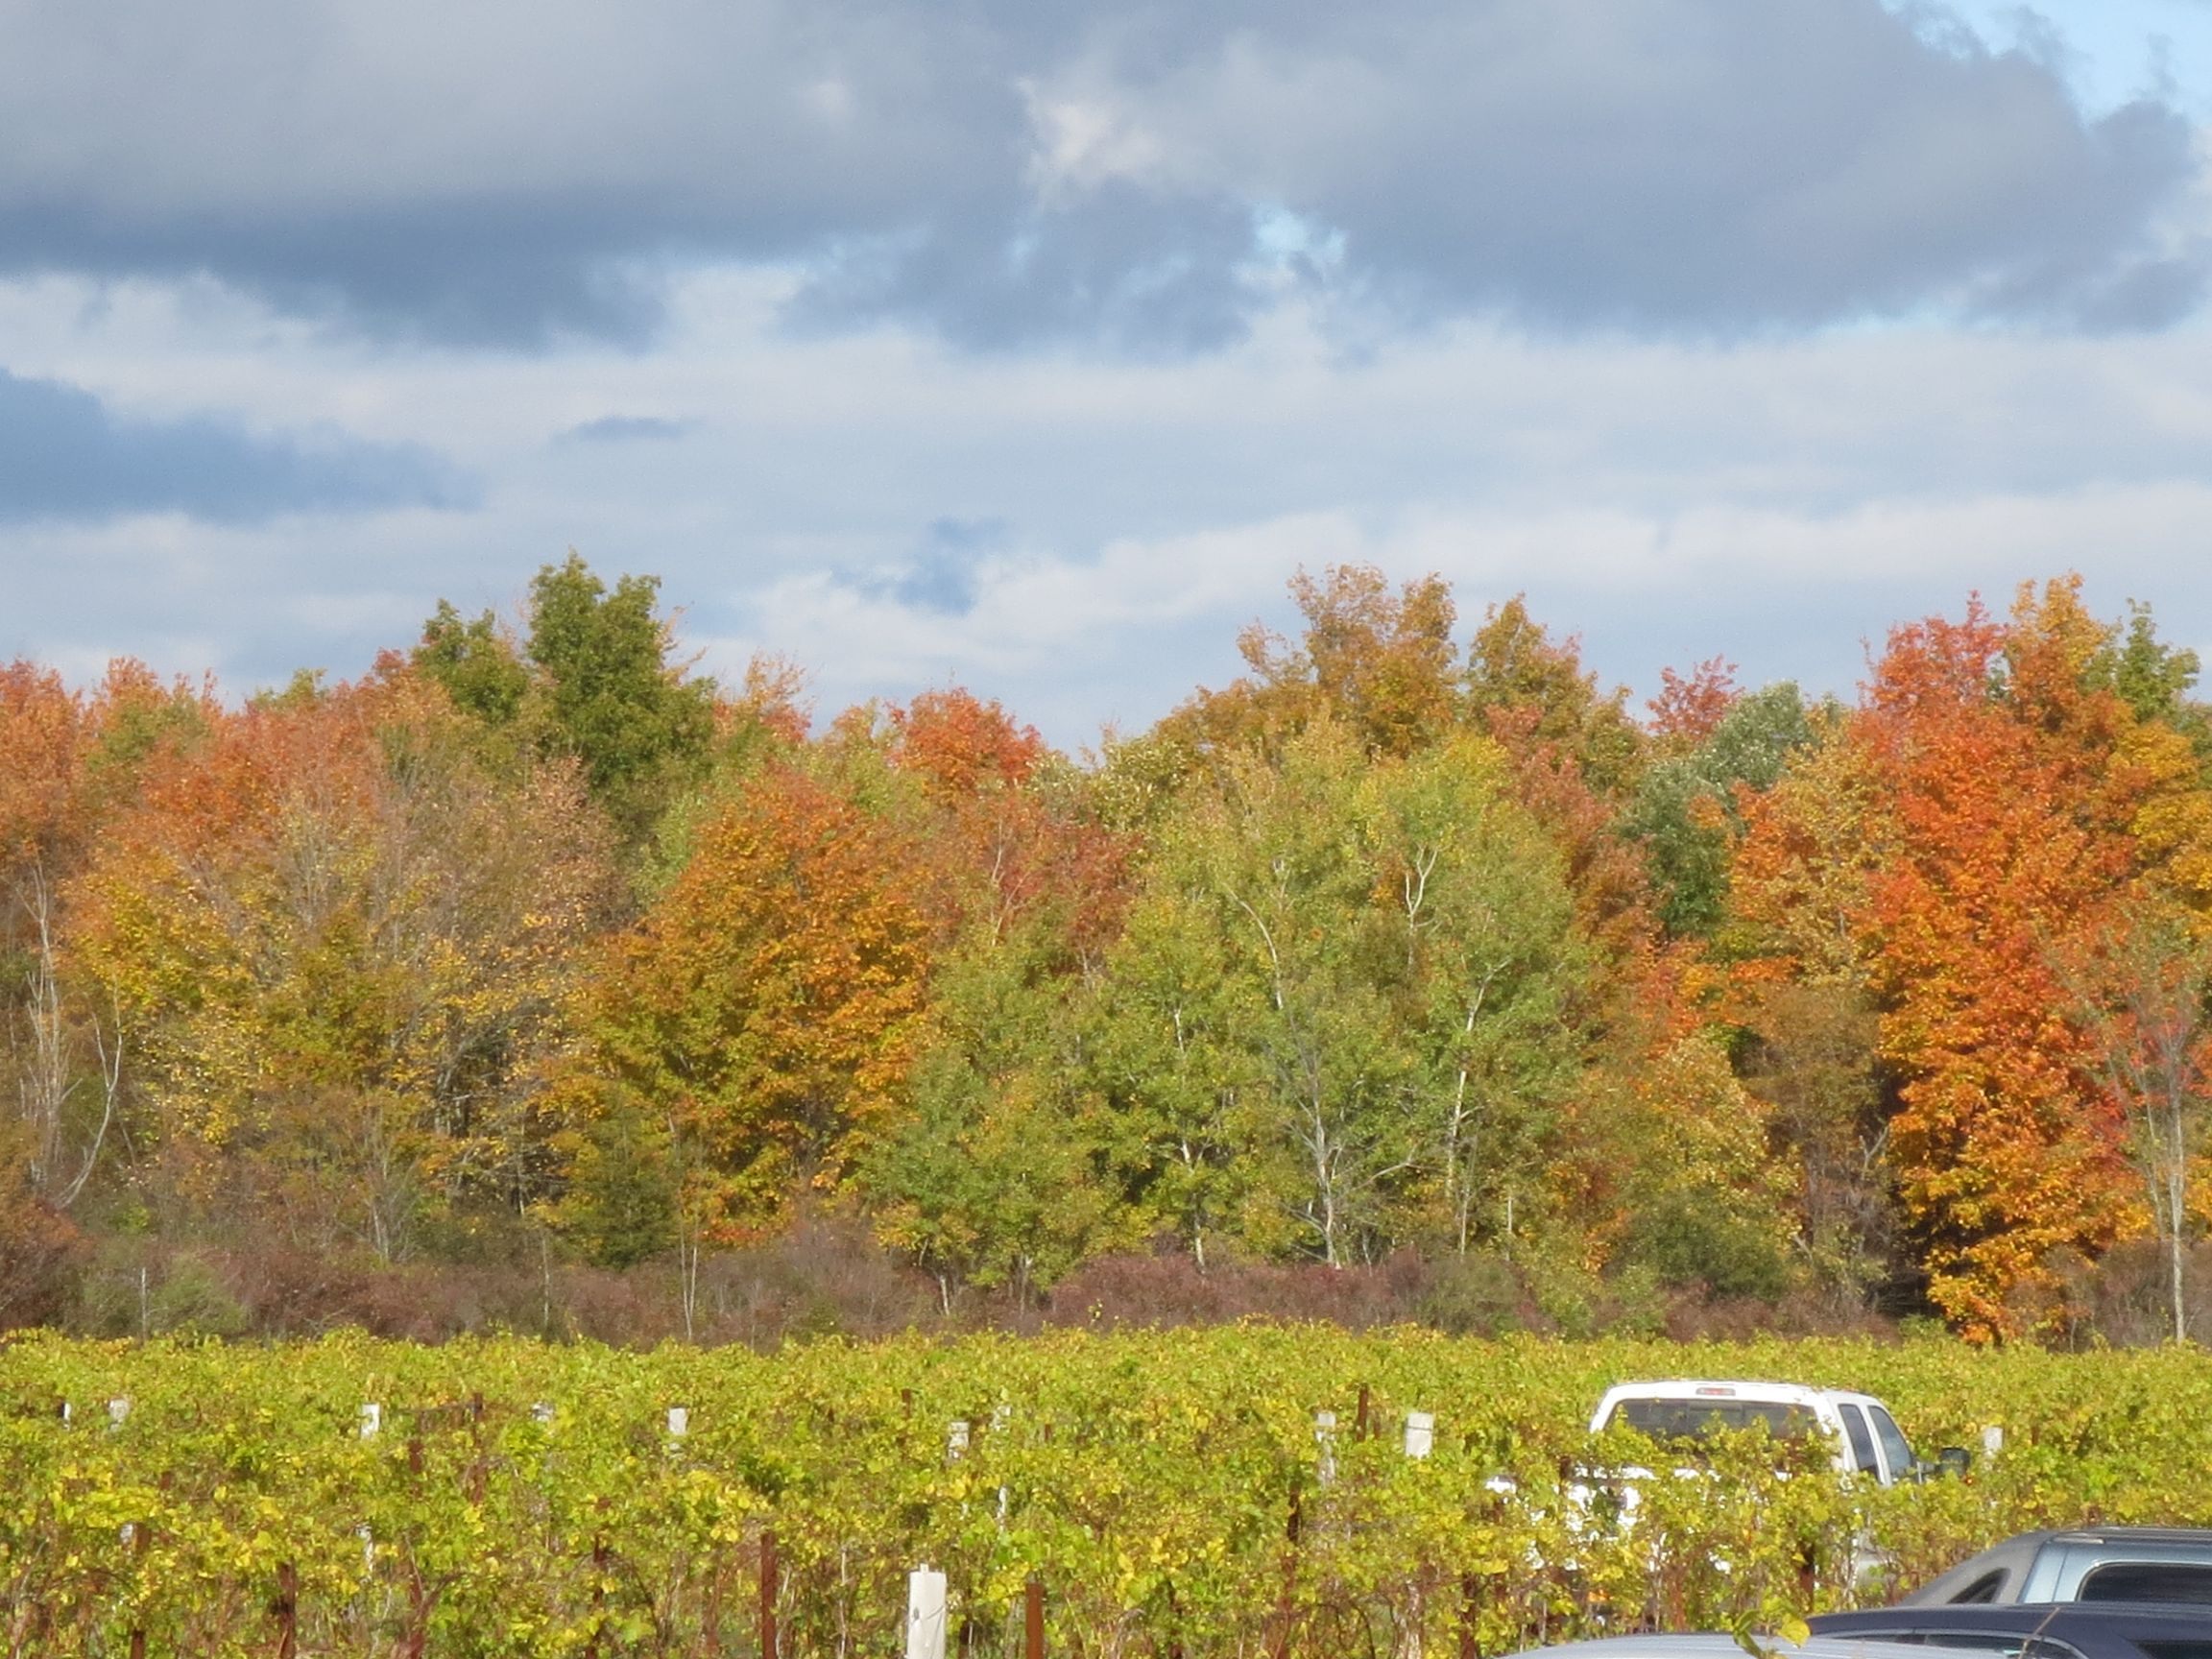 Fall foliage colors and vineyard